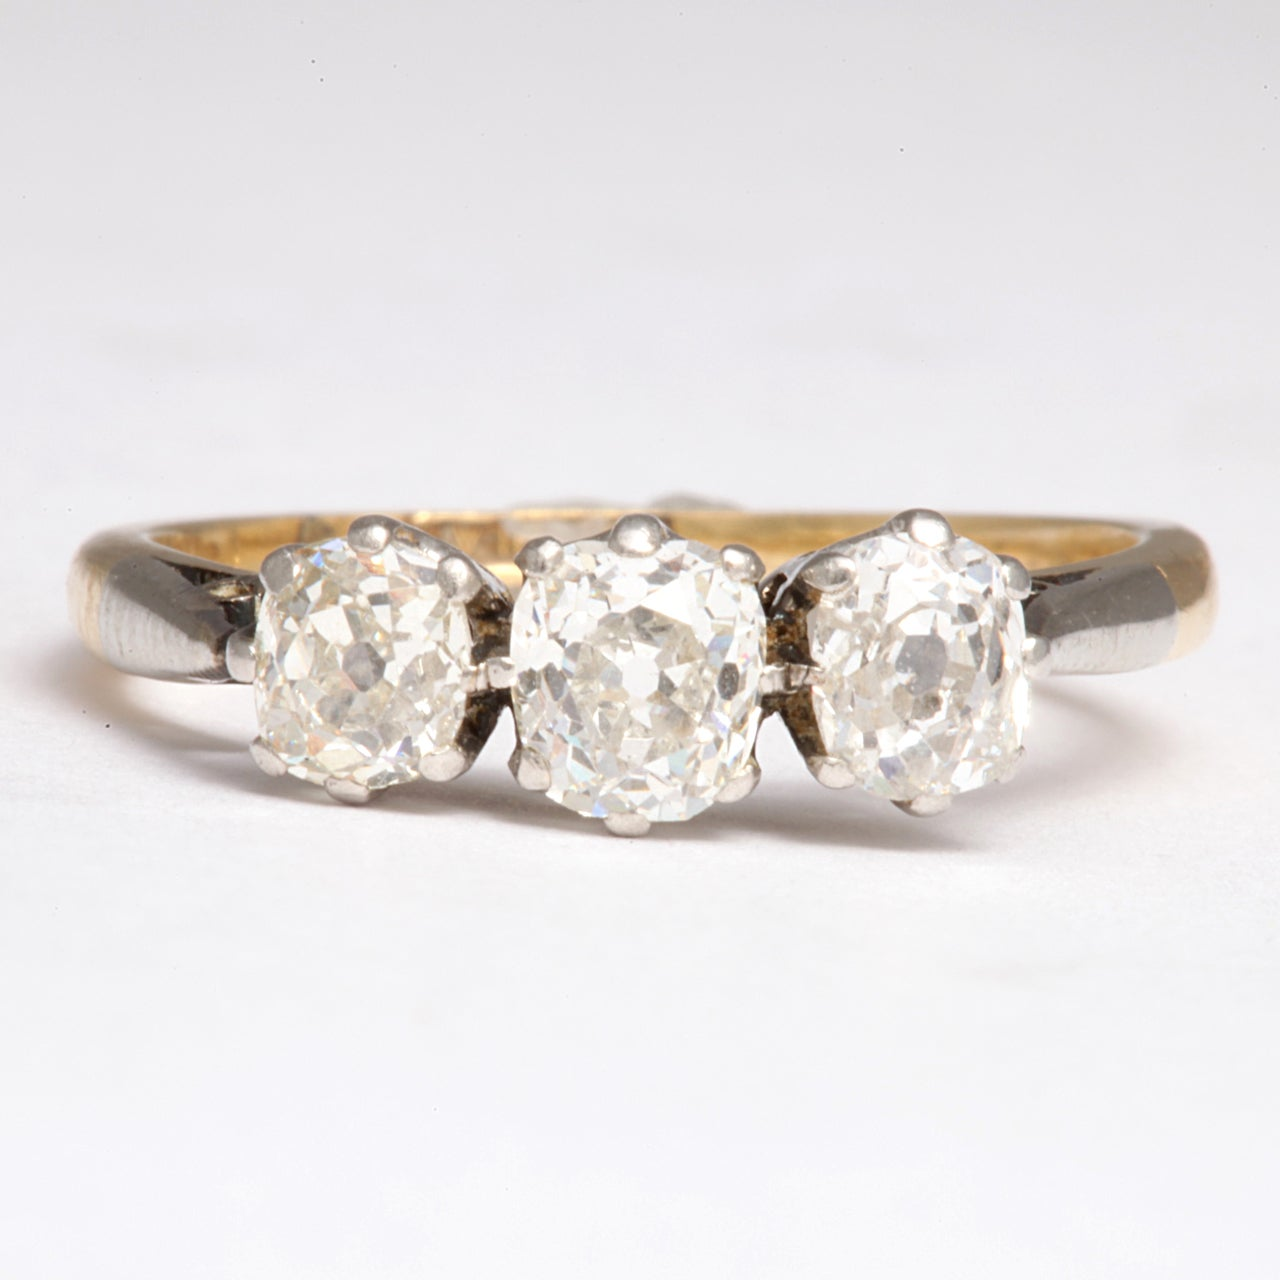 Three Old Mine Diamonds of approximately 1.30 cts, set in platinum and gold, announce your devotion then, now and forever as they radiate their beautiful light. Elegant and warm, the size of the stones,neither small or large, but feel rightly